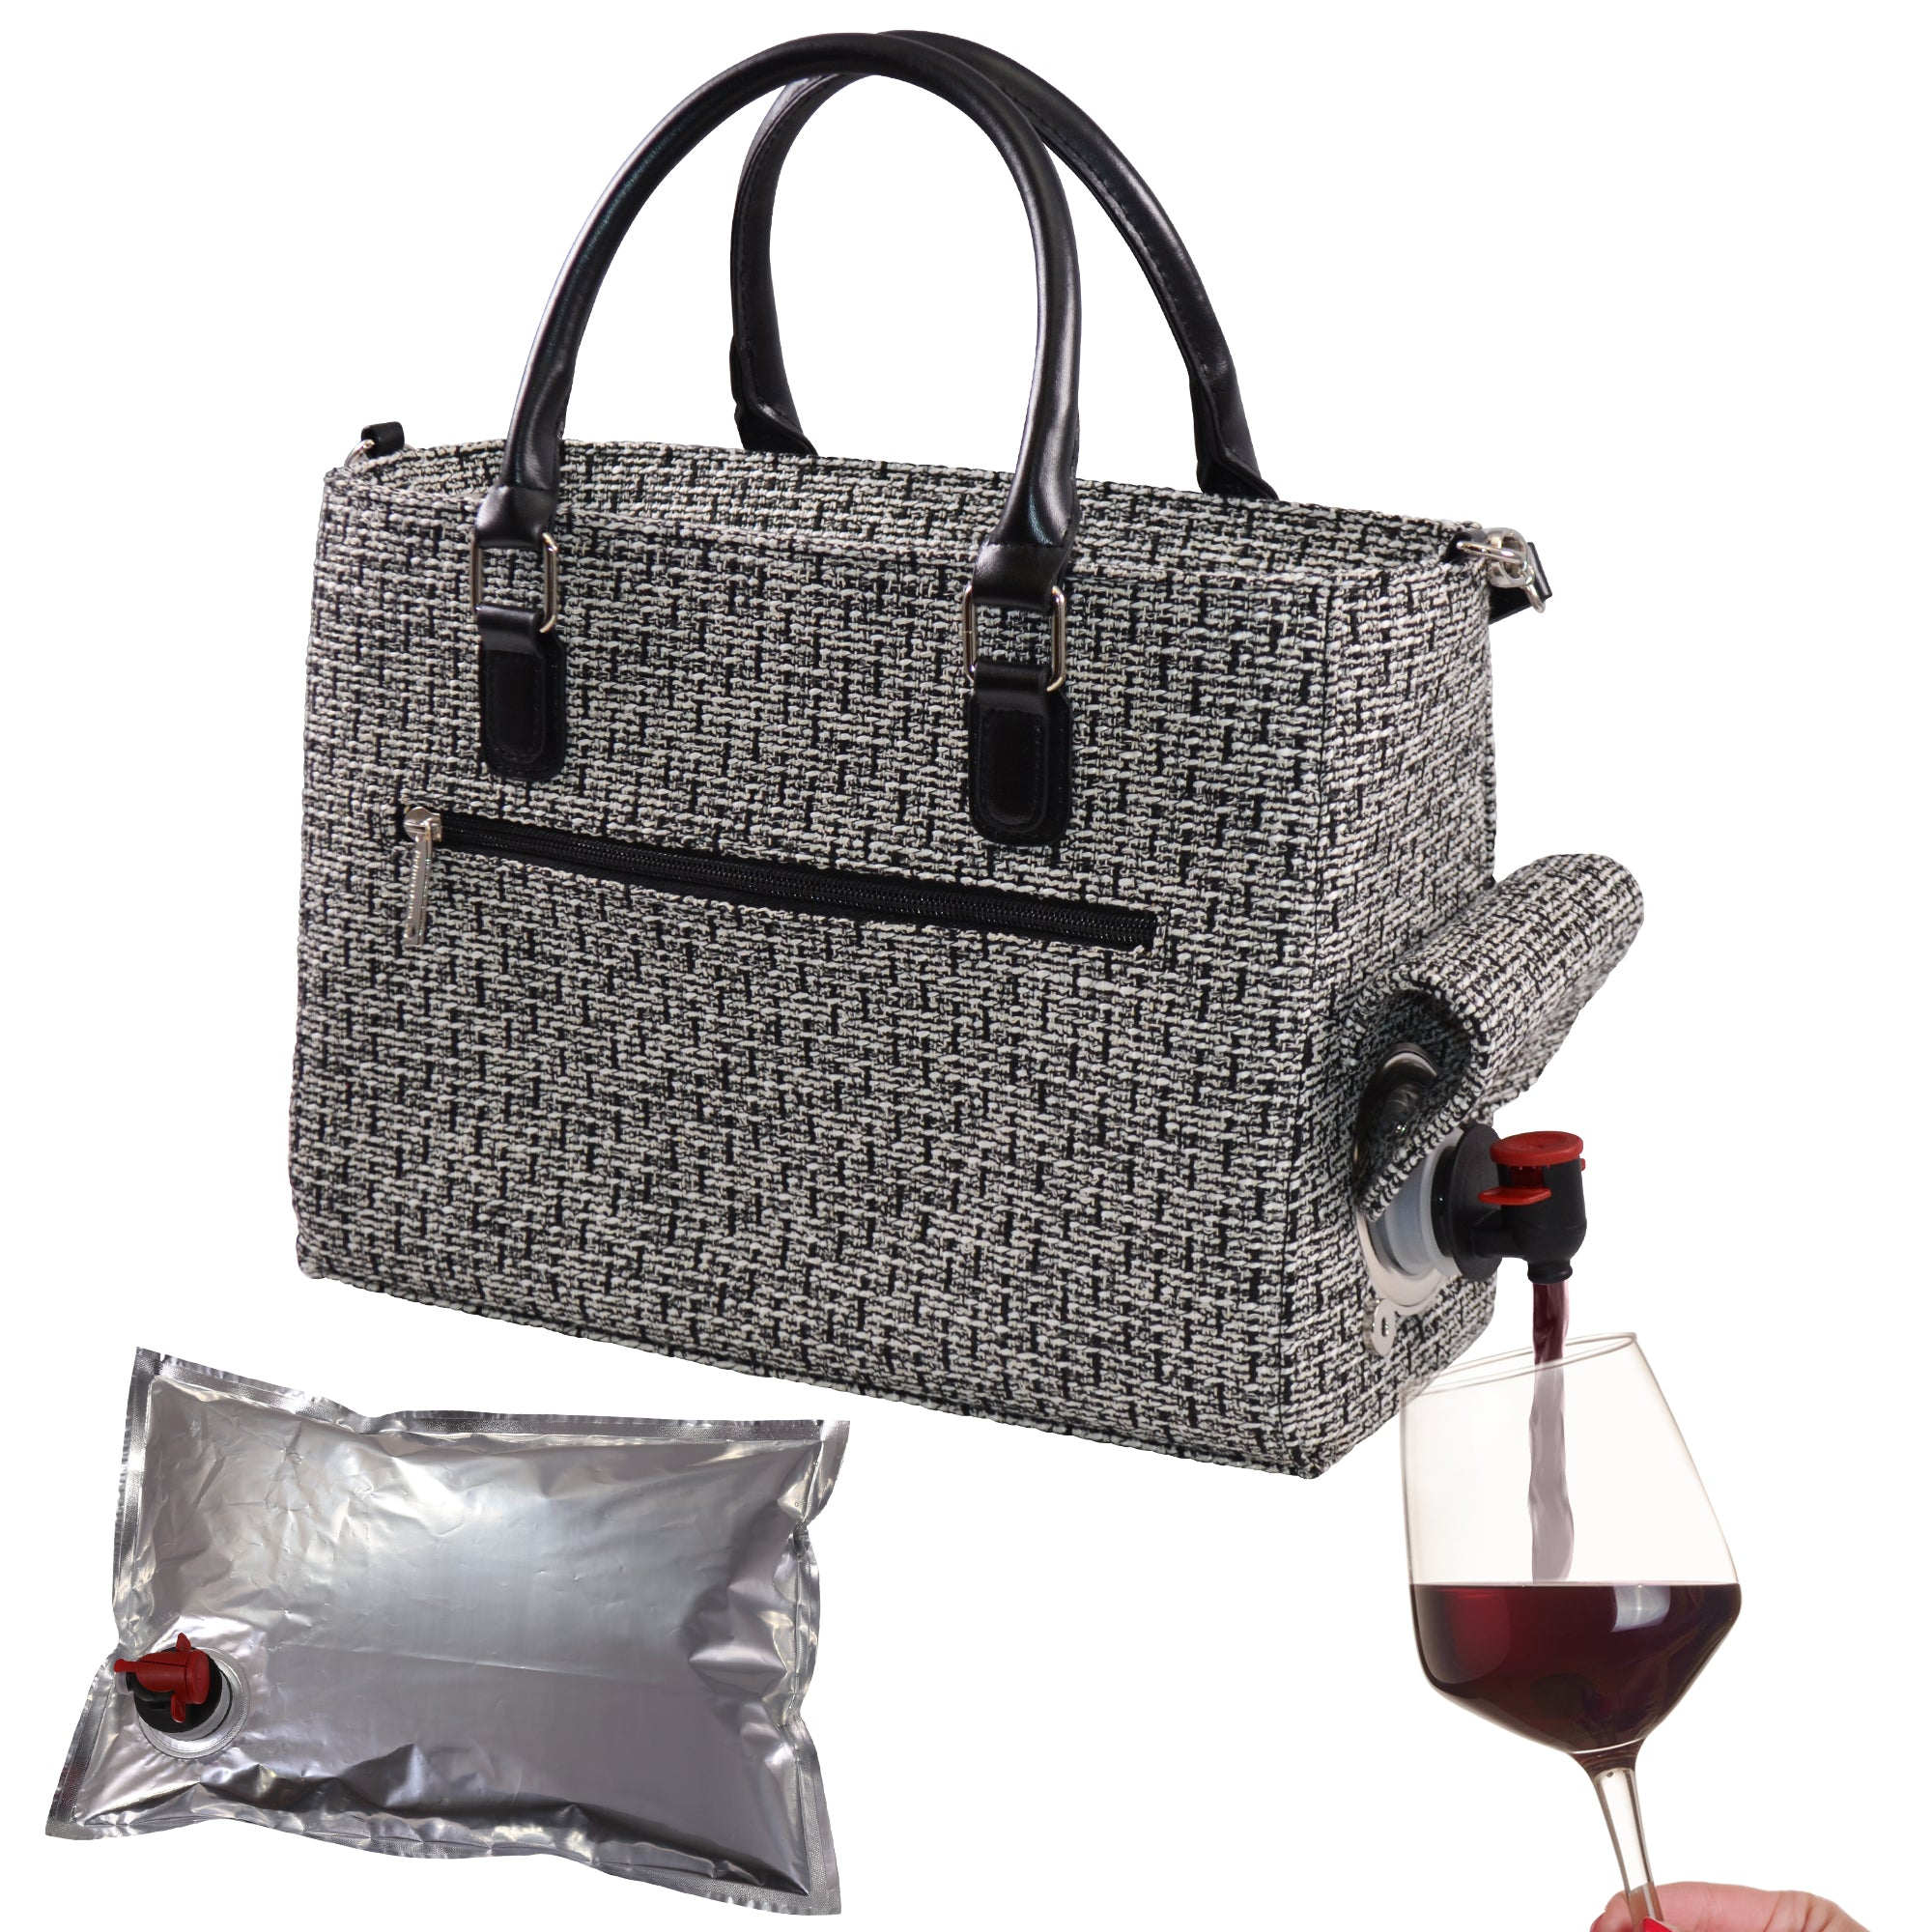 Drink Purse Tweed Design - primewareinc